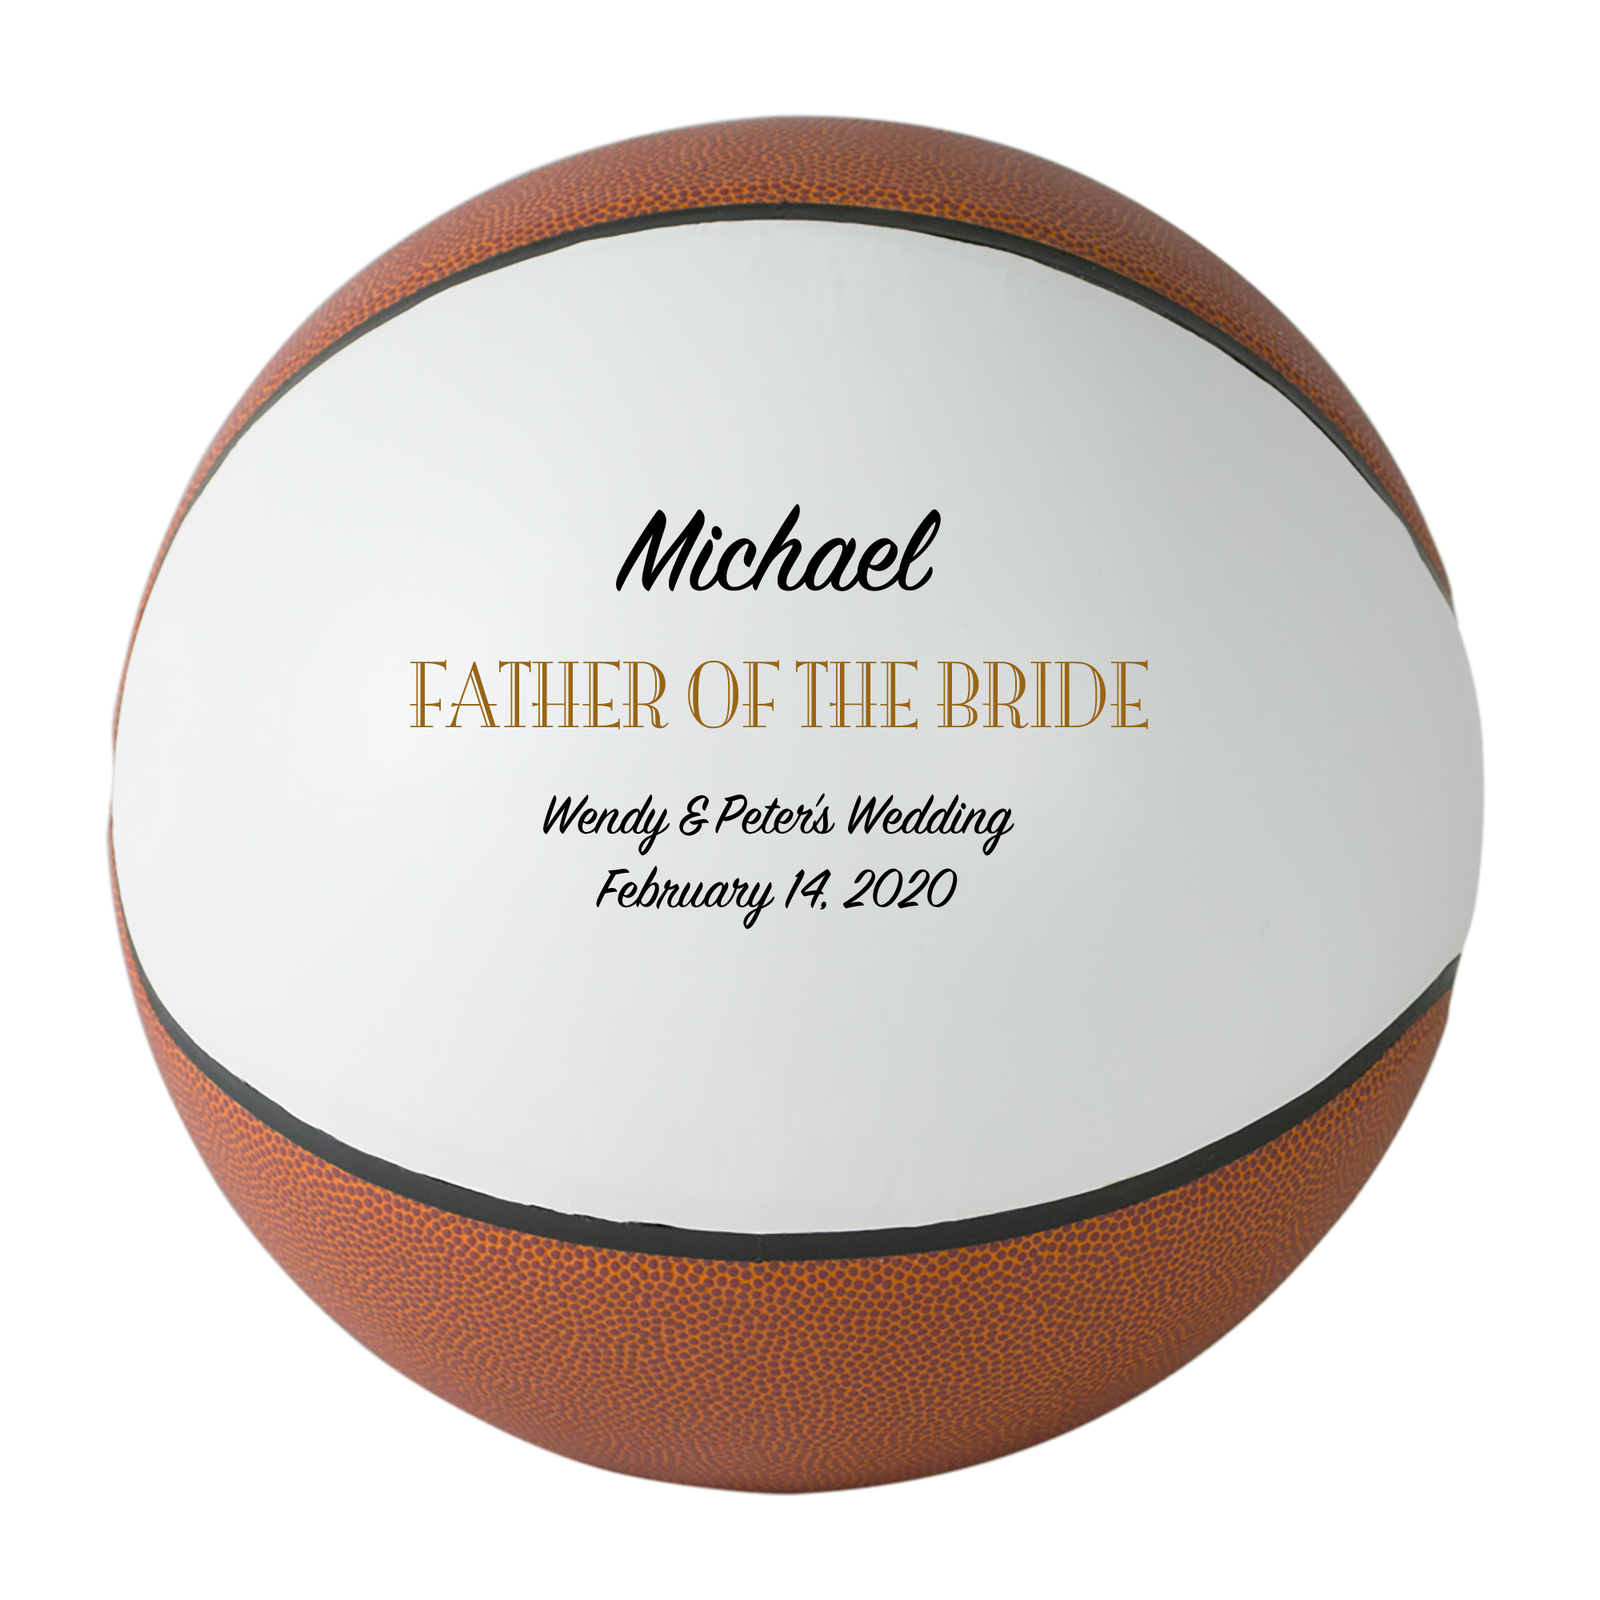 Primary image for Father of the Bride Regulation Basketball Gift - Personalized Wedding Favor